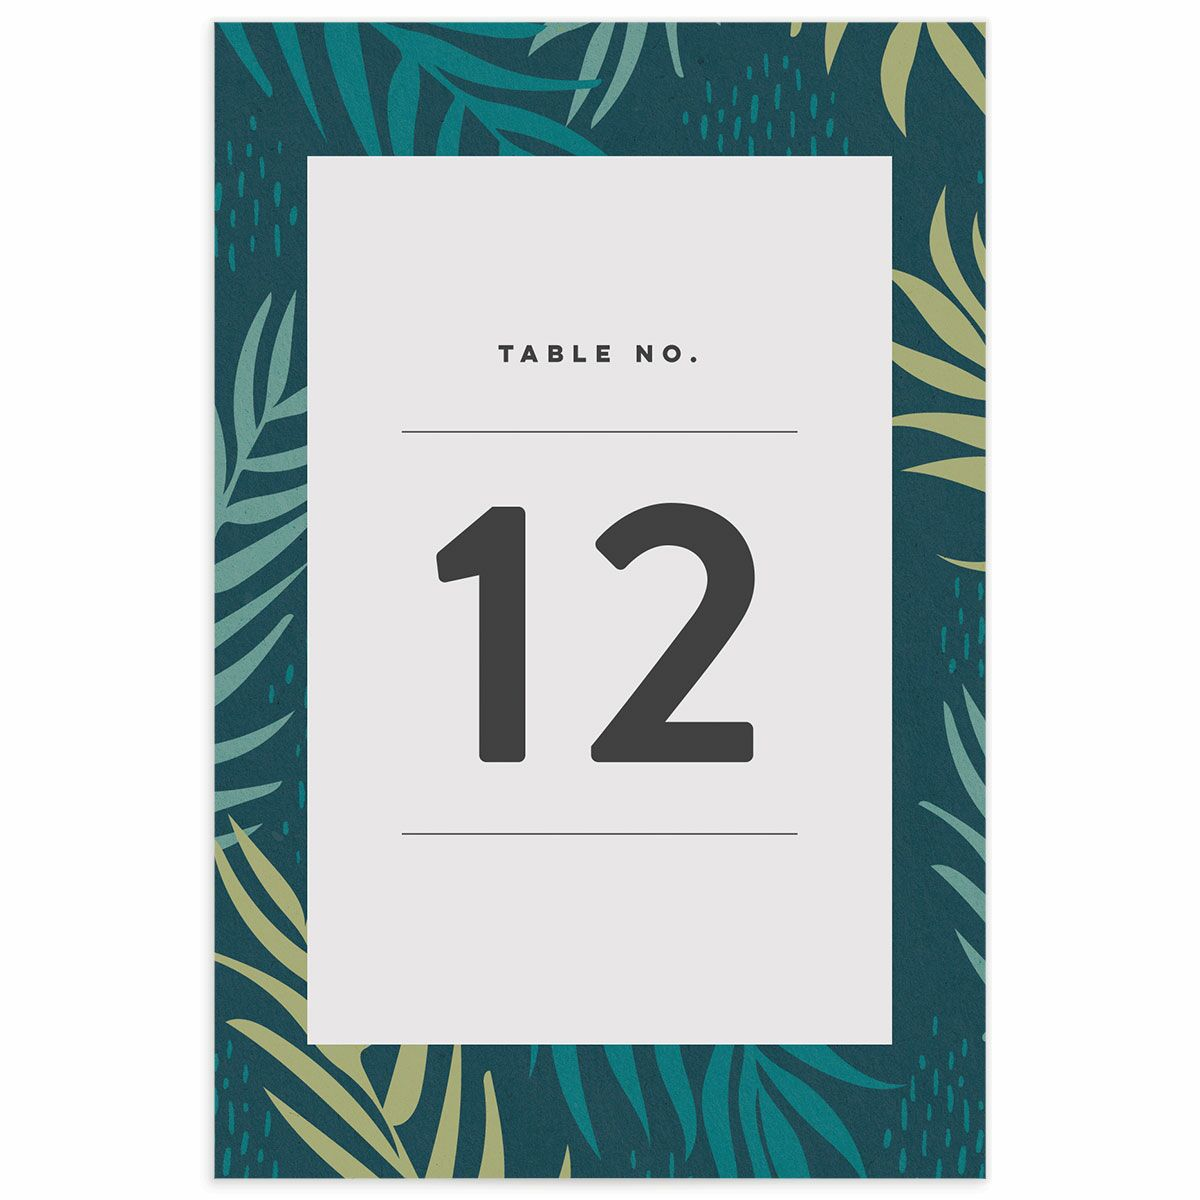 A Wedding Table Number from the Modern Palm Collection